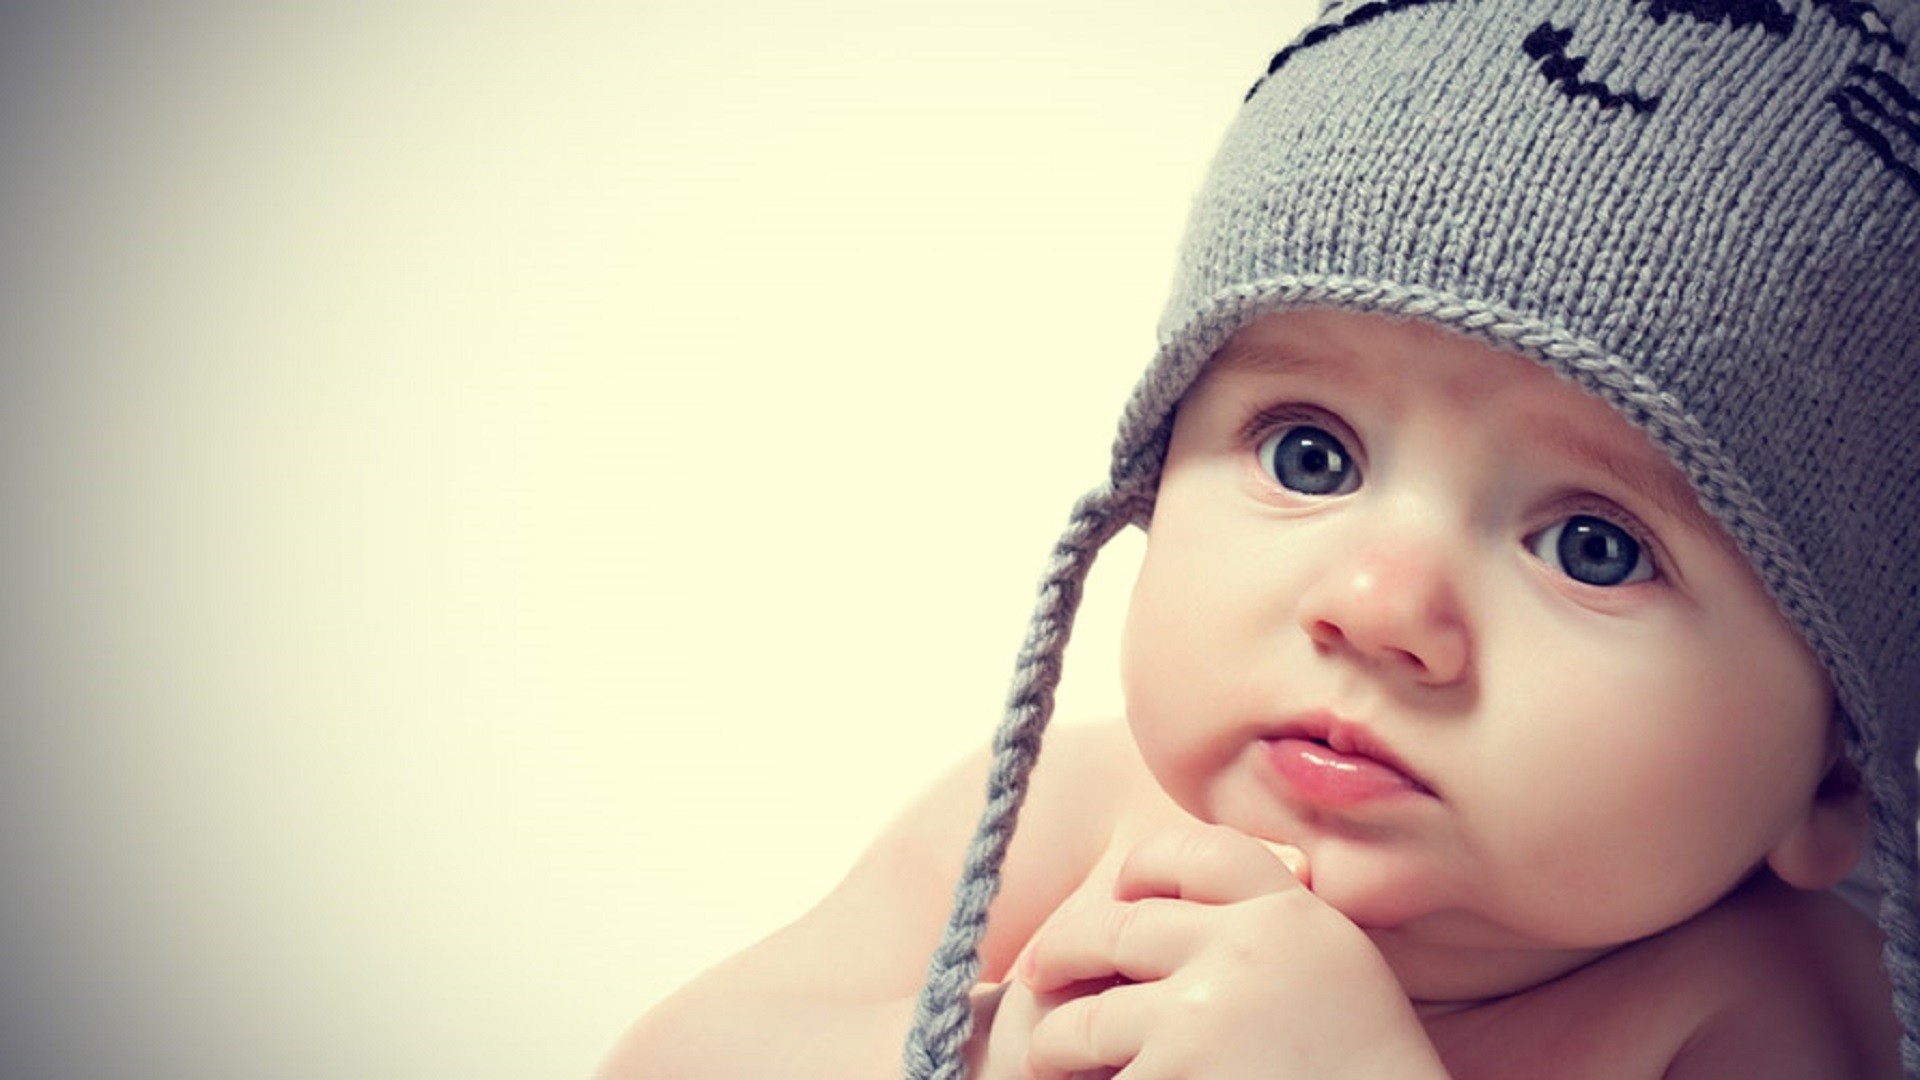 2560x1600 Baby Wallpapers Hd Resolution Download